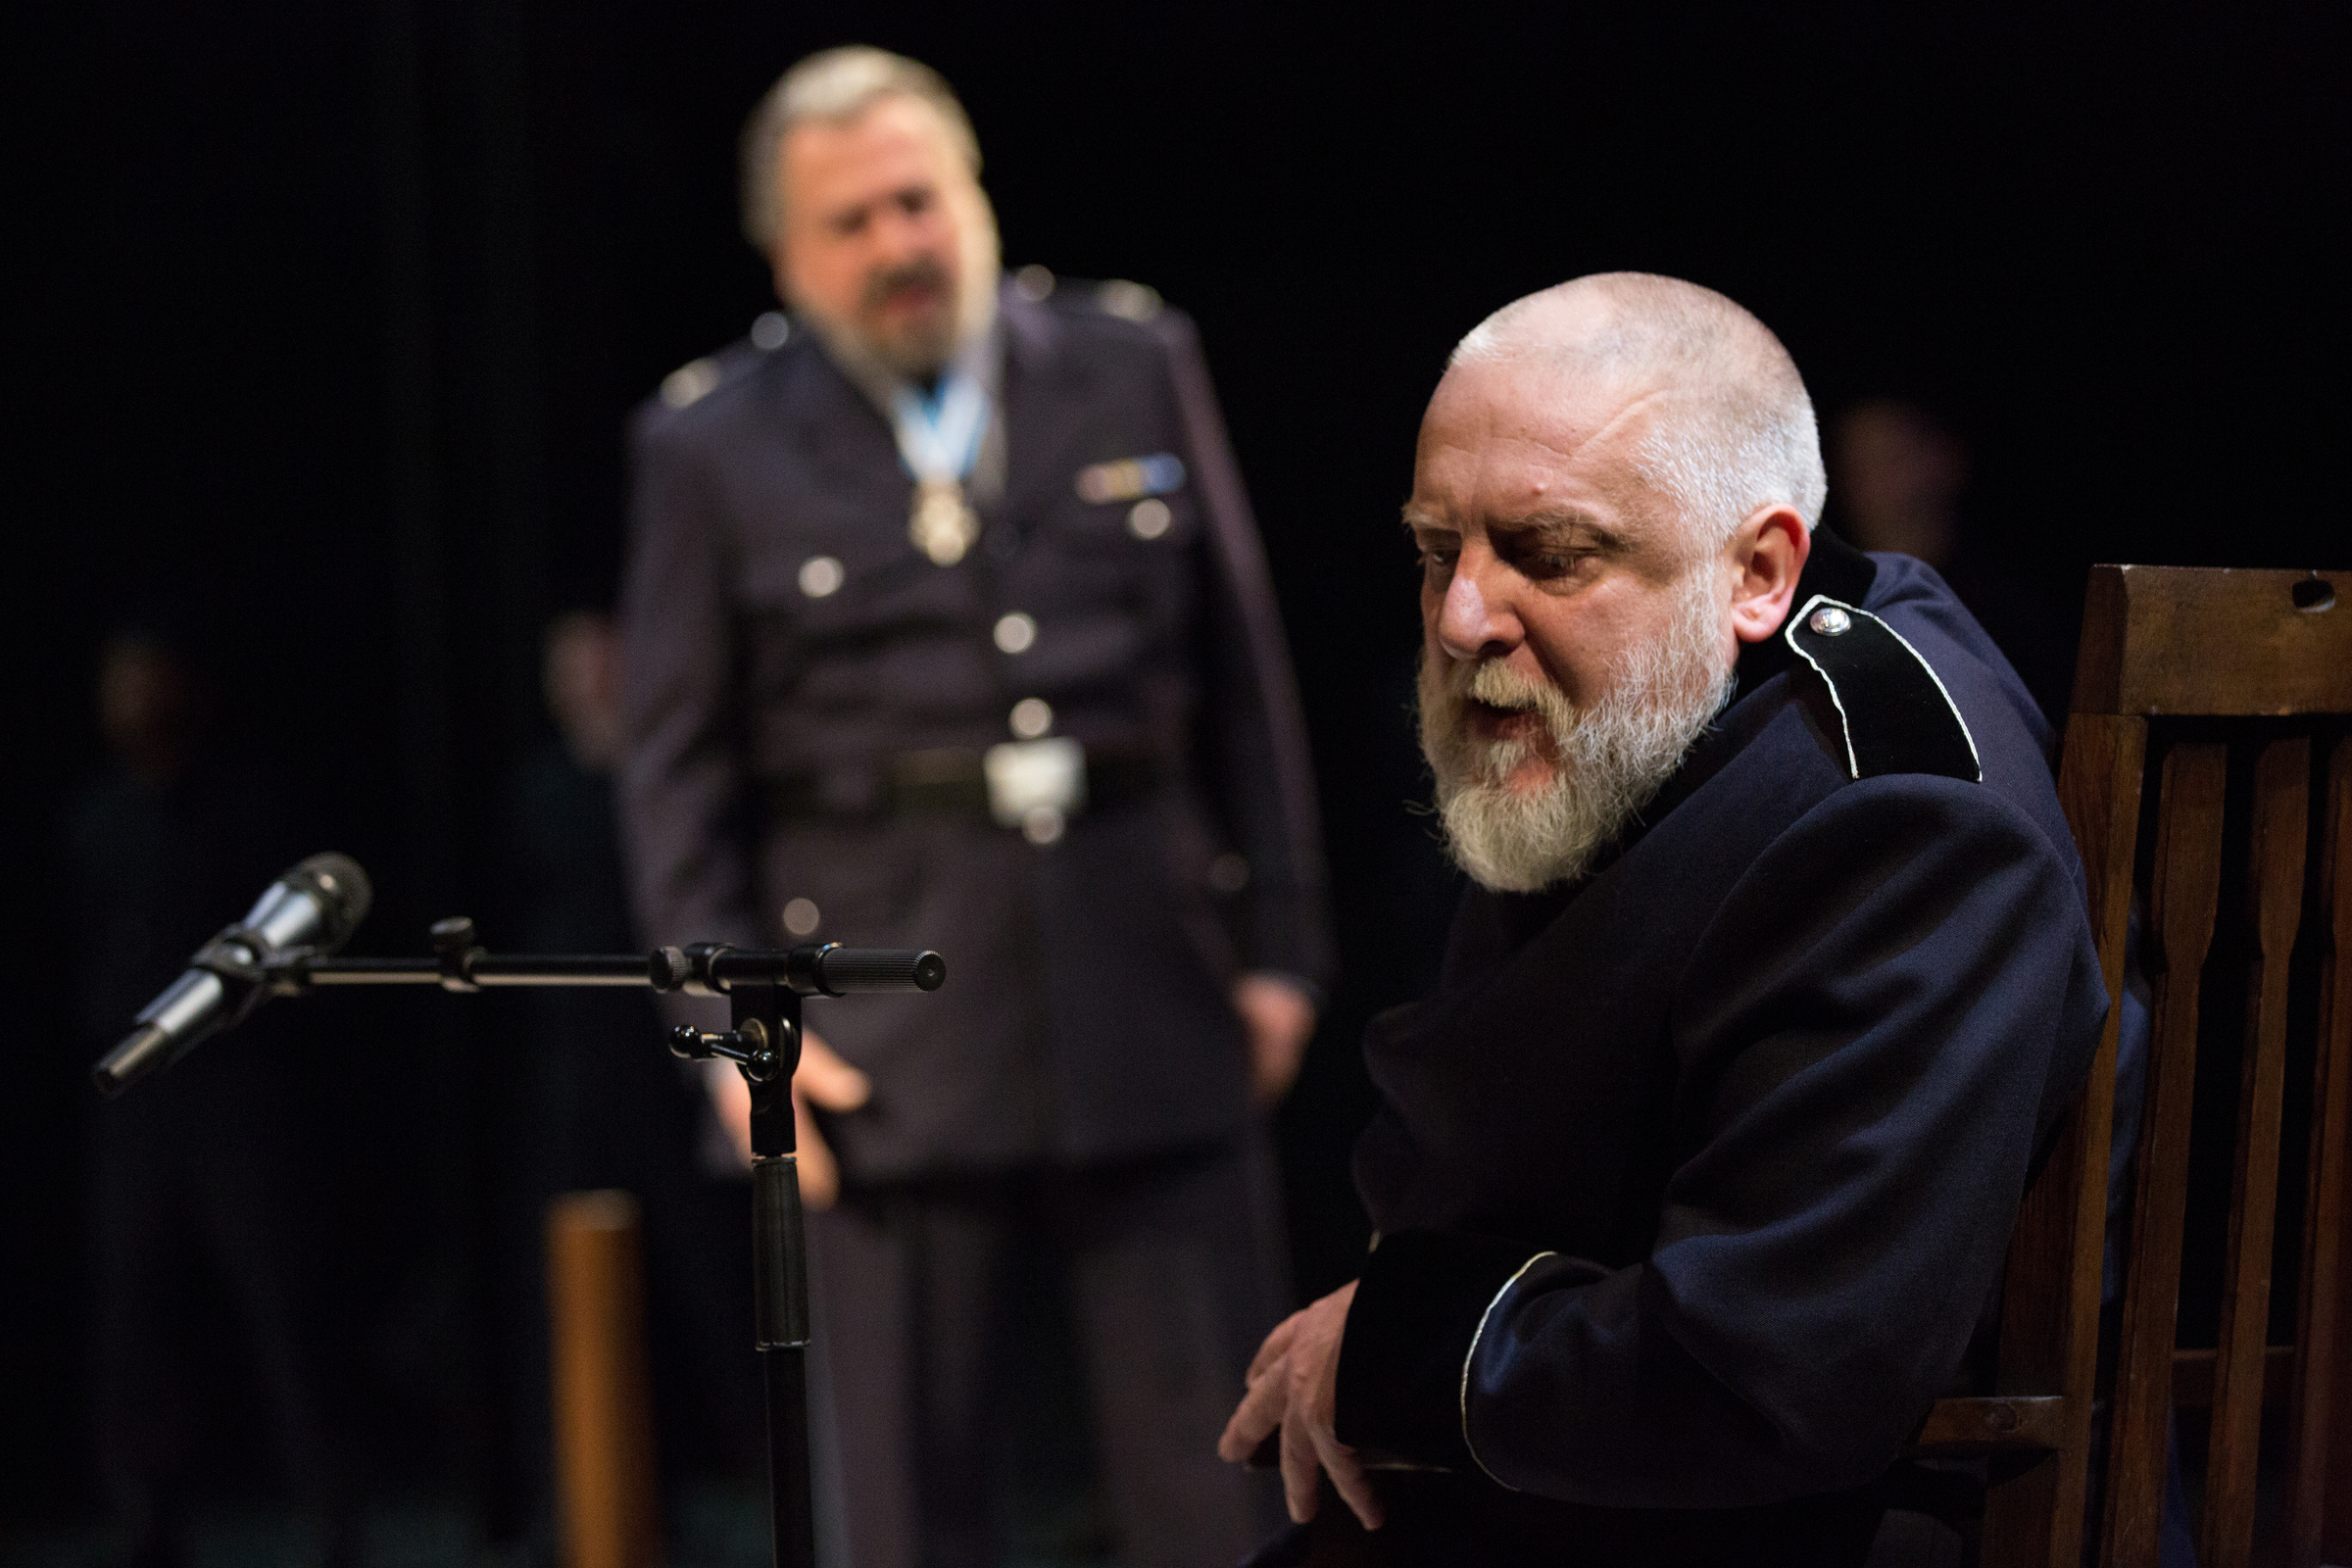 king lear madness essay essays and diversions the madness of king  essays and diversions the madness of king lear simon russell beale as lear about to banish